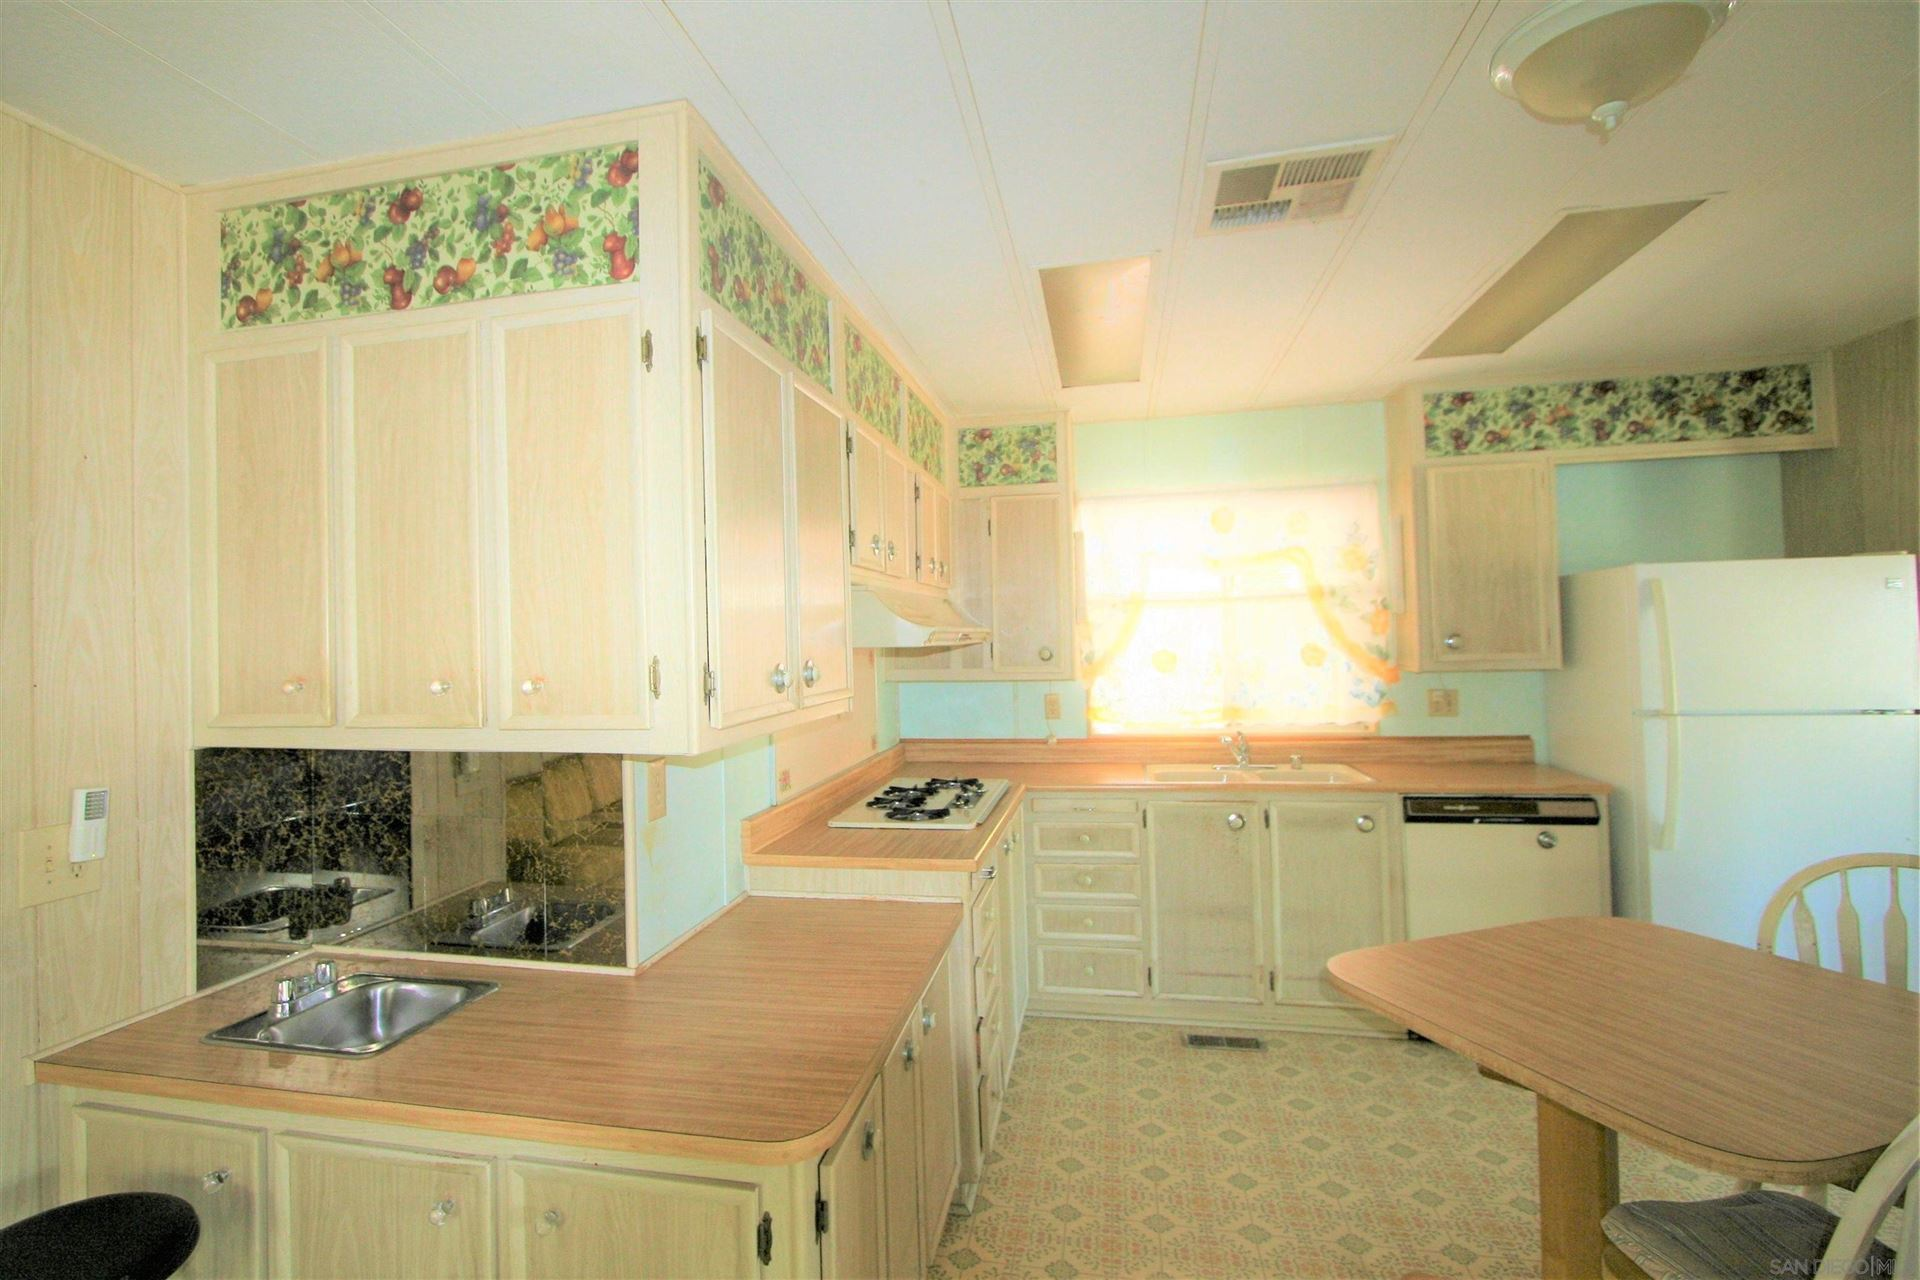 Photo of 1010 Palm Canyon Dr #323, Borrego Springs, CA 92004 (MLS # 210025969)